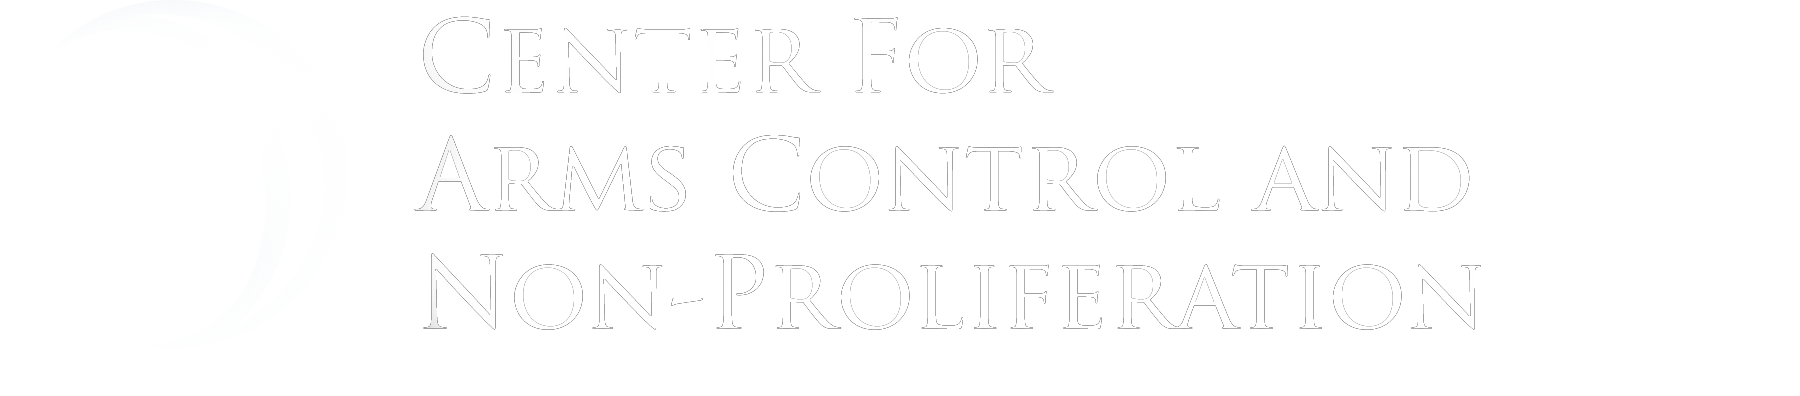 Center for Arms Control and Non-Proliferation